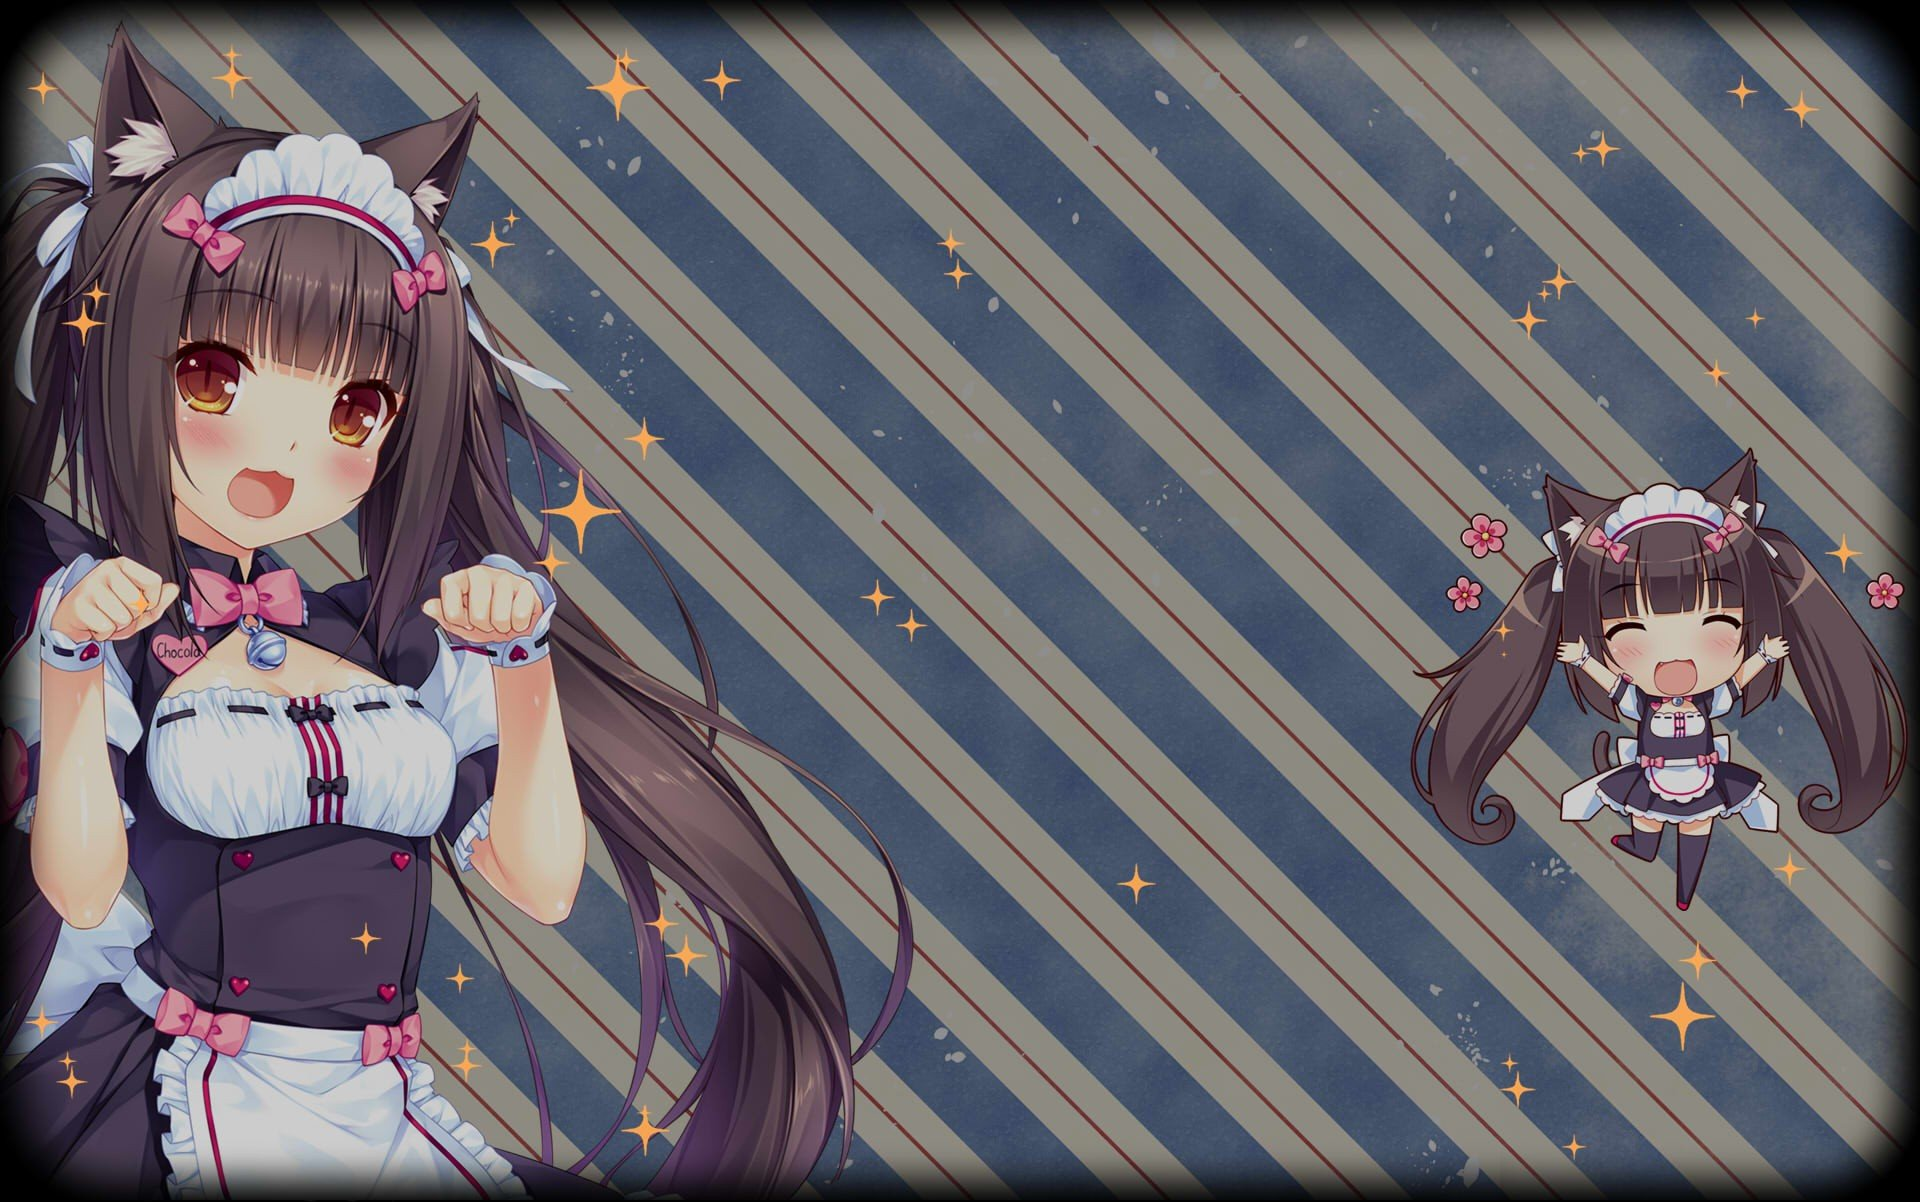 Cute Steam Wallpapers Neko Para Chocolat Neko Para Anime Girls Maid Outfit